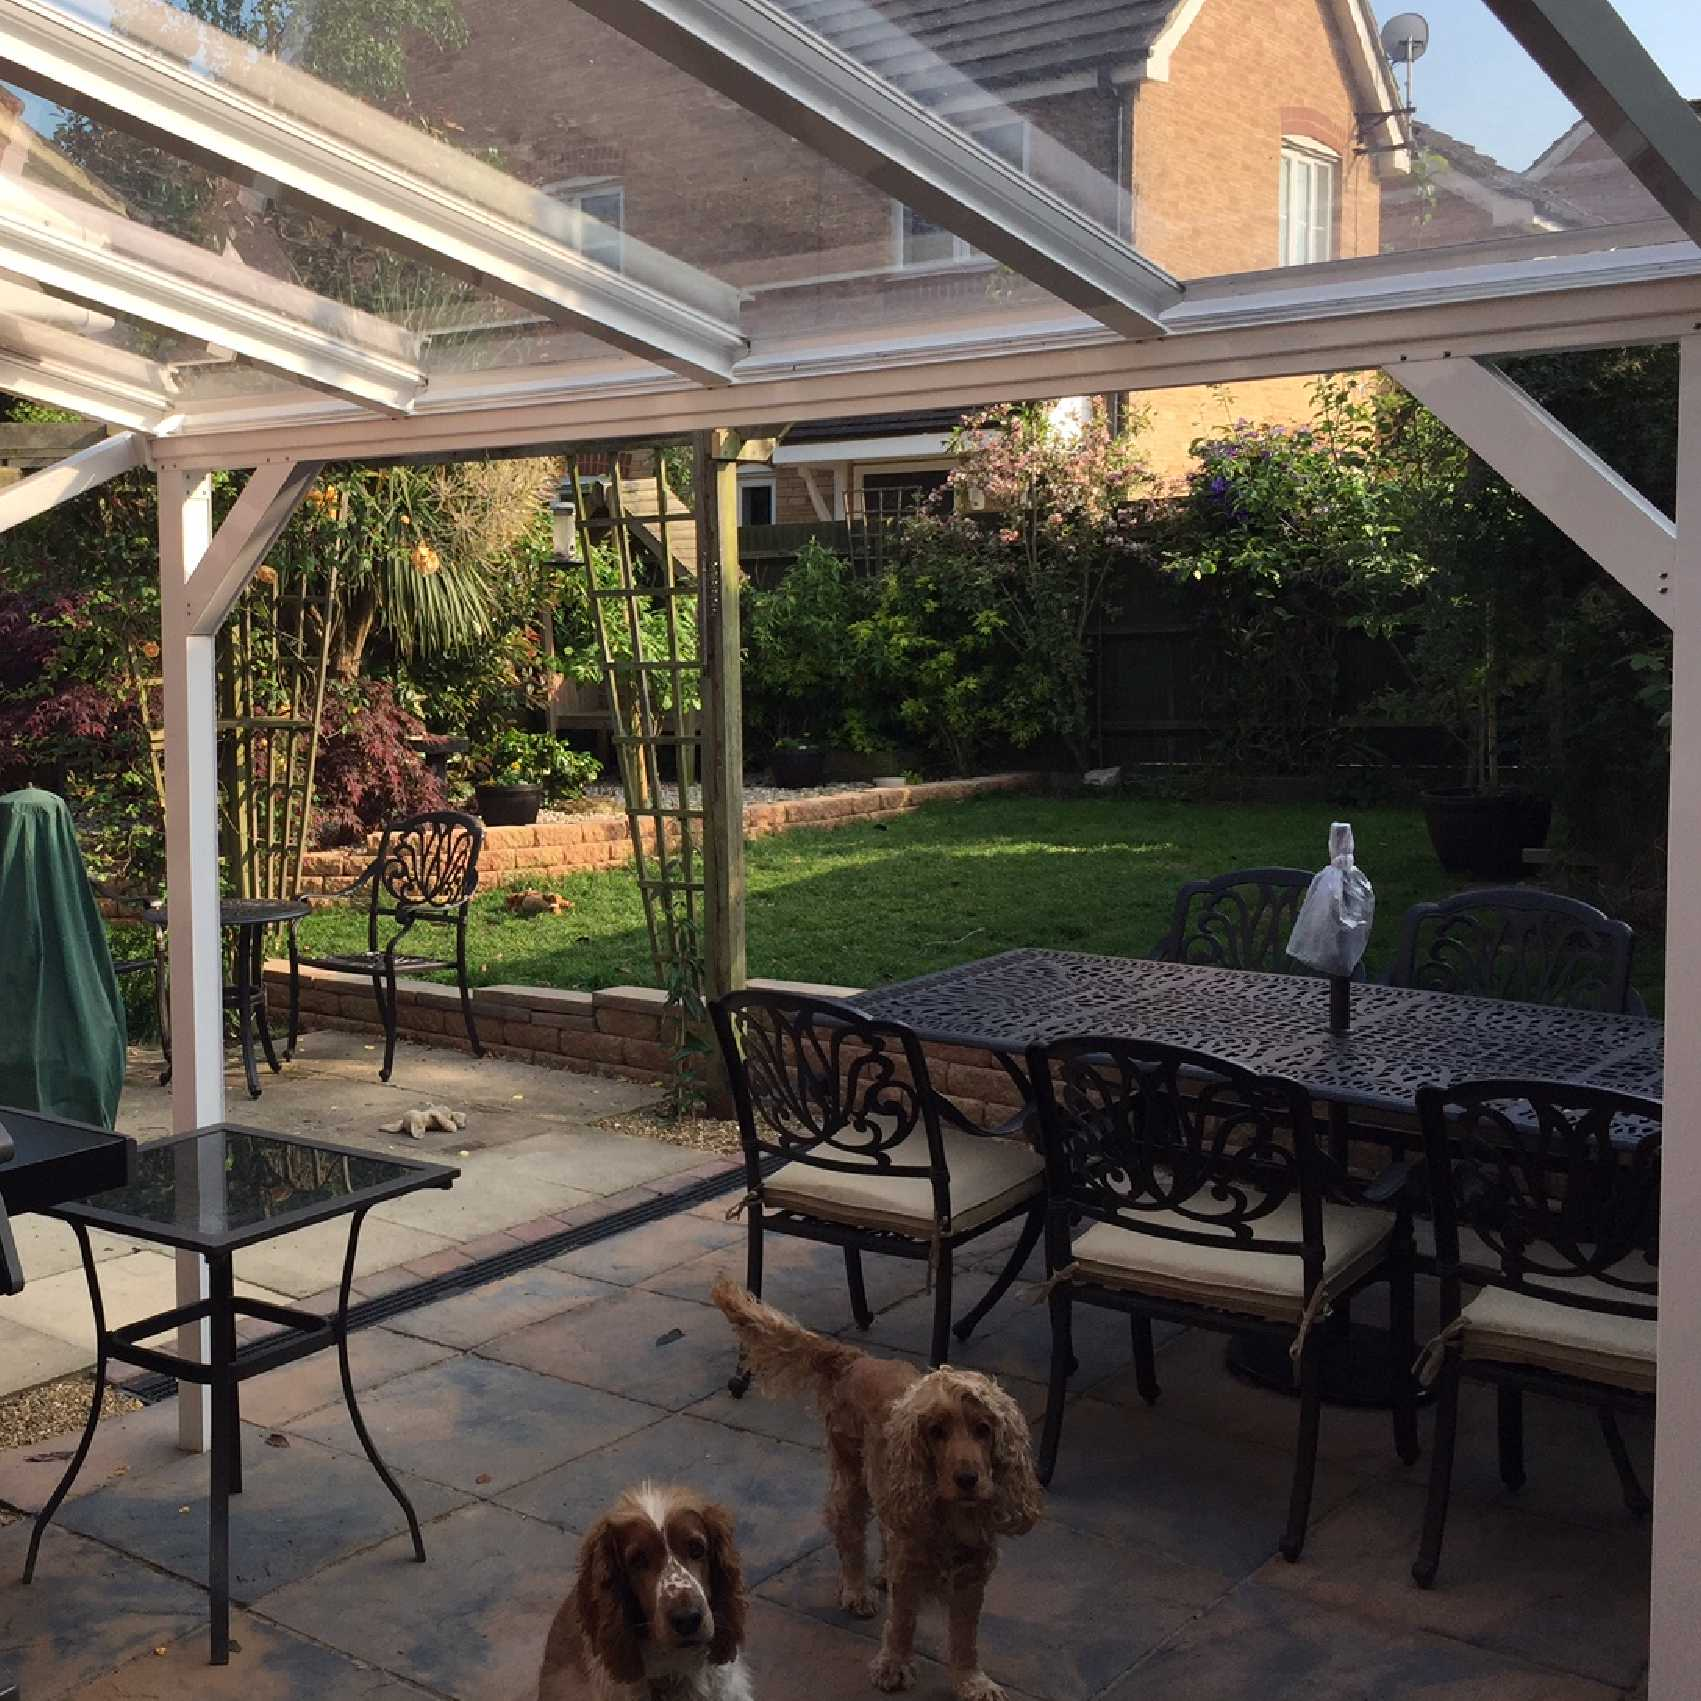 Affordable Omega Smart White Lean-To Canopy UNGLAZED for 6mm Glazing - 9.8m (W) x 2.0m (P), (5) Supporting Posts